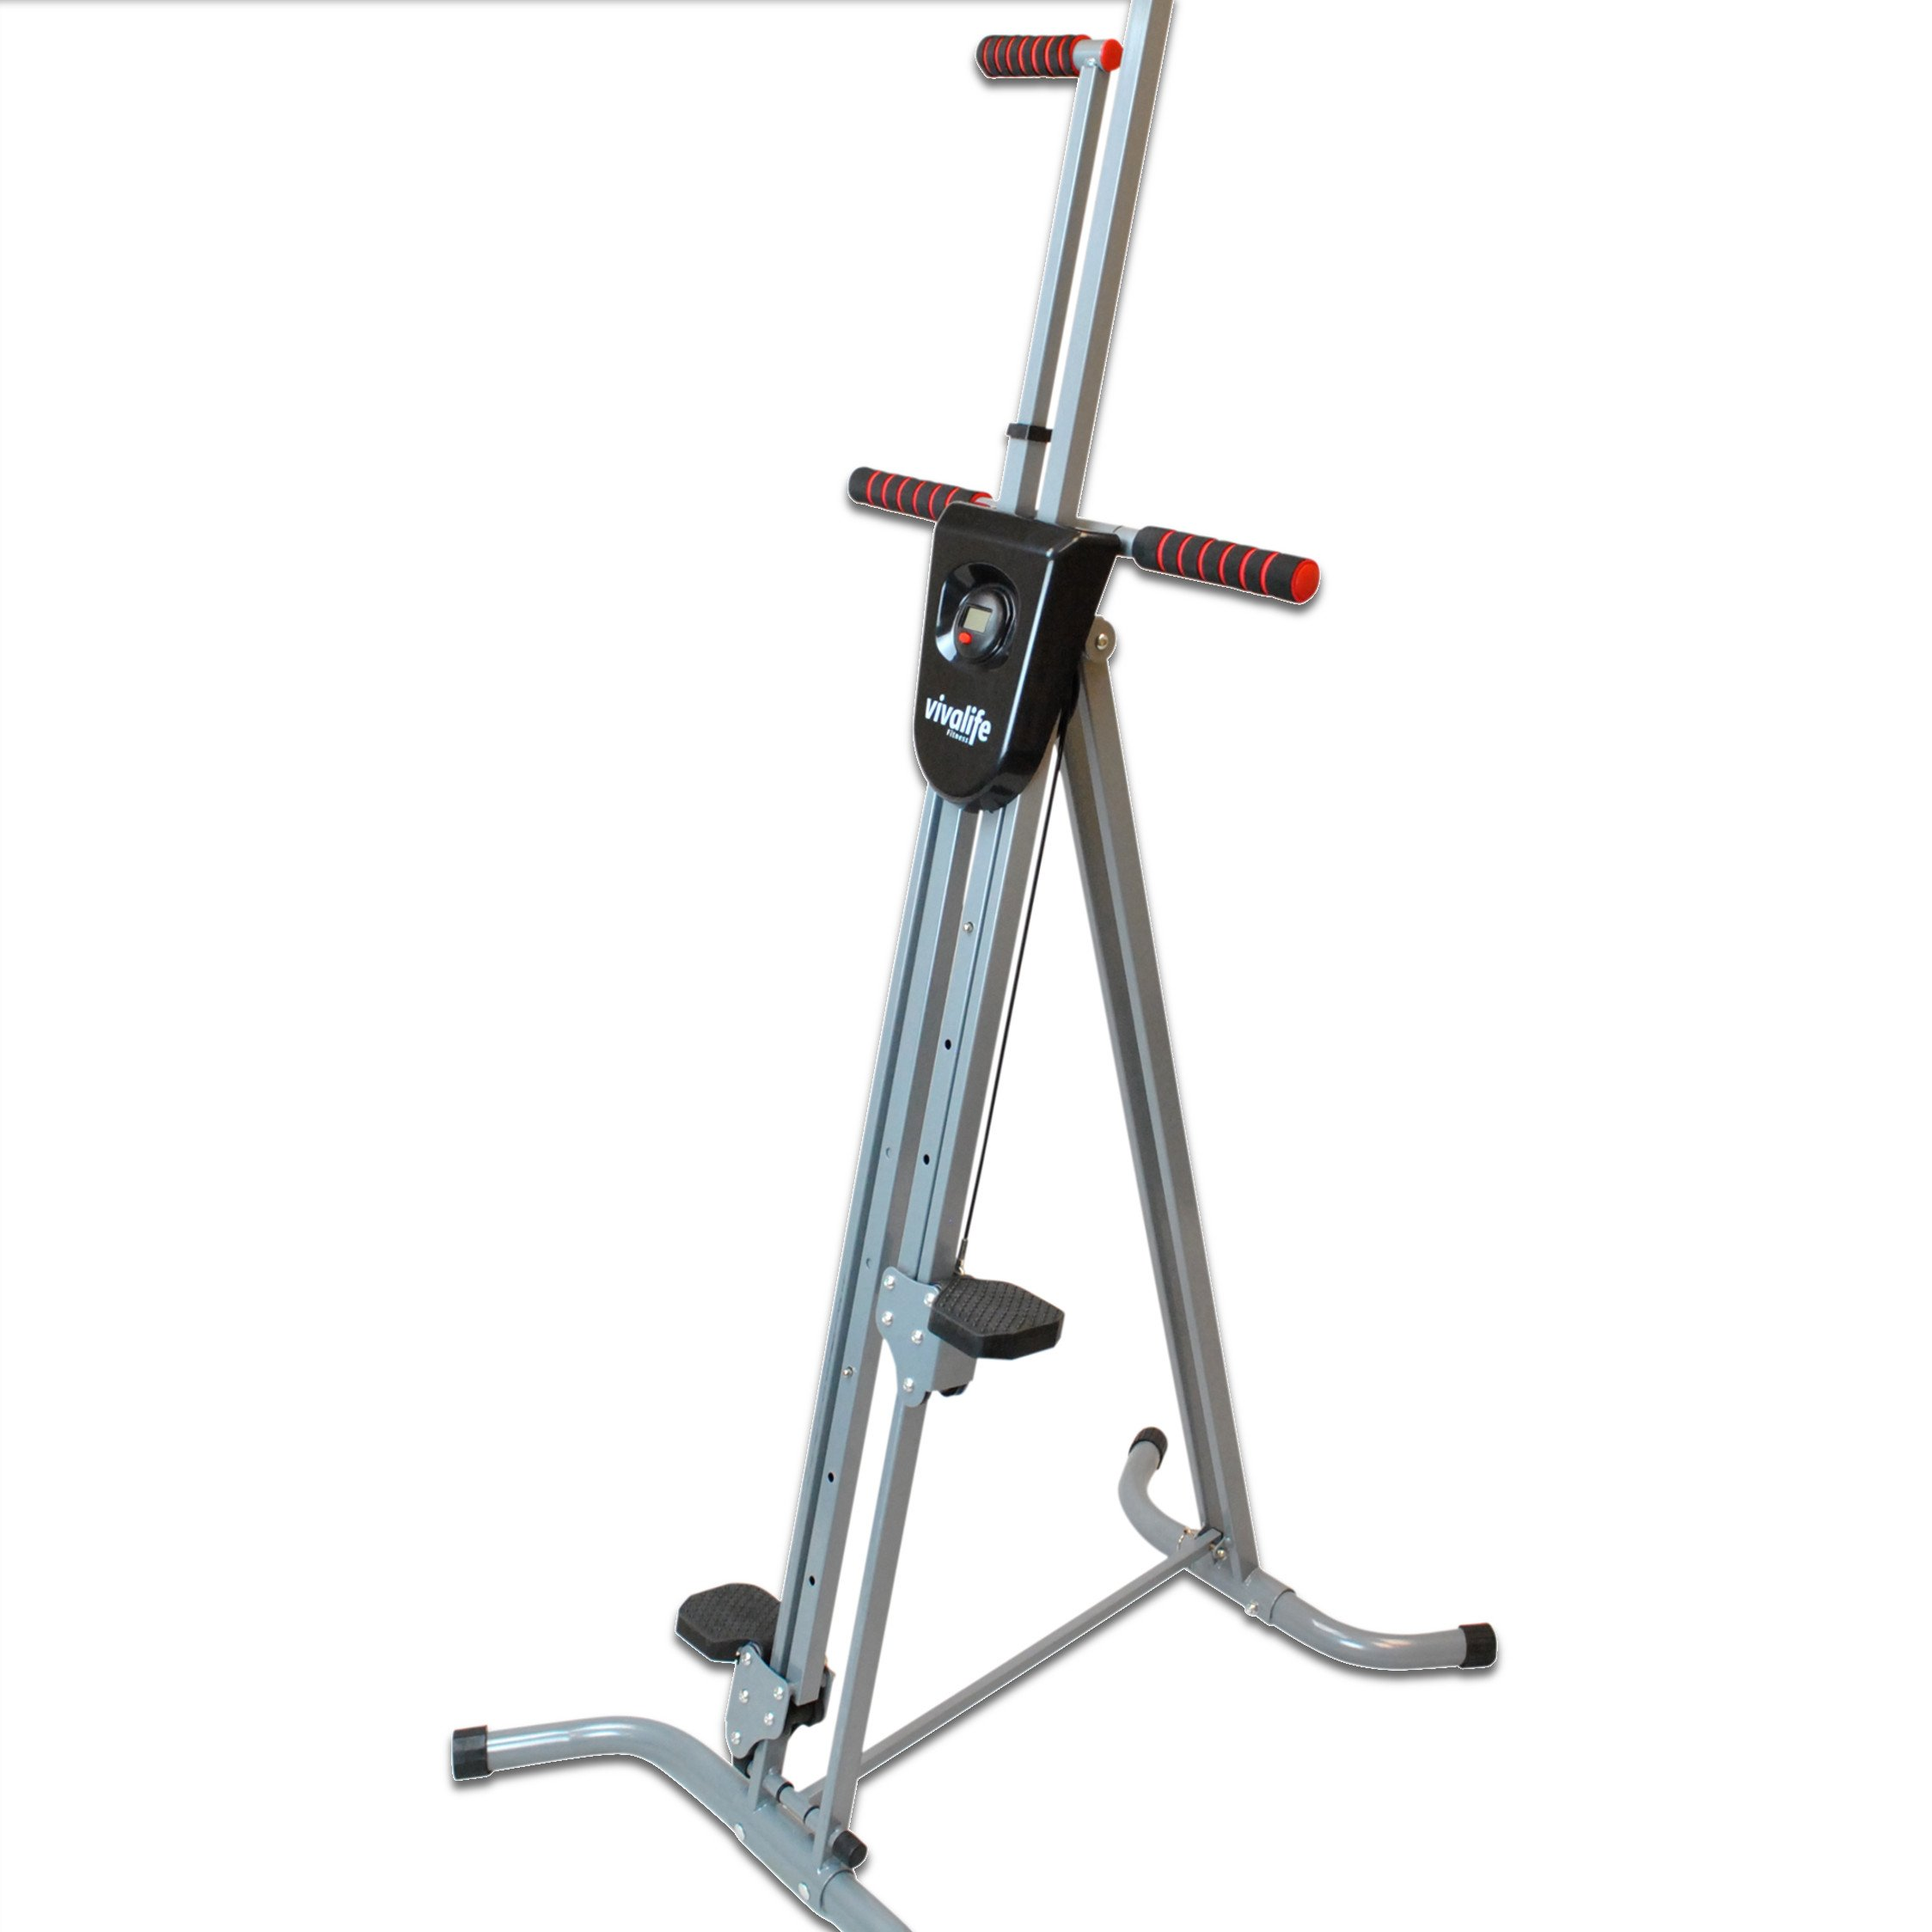 Viva Life Fitness Vertical Climber Exercise Machine - Max Calories Burned in Minimum Time – Full Body Fitness - Simulates Climbing Ladder or Stairs - Folding & Portable Design